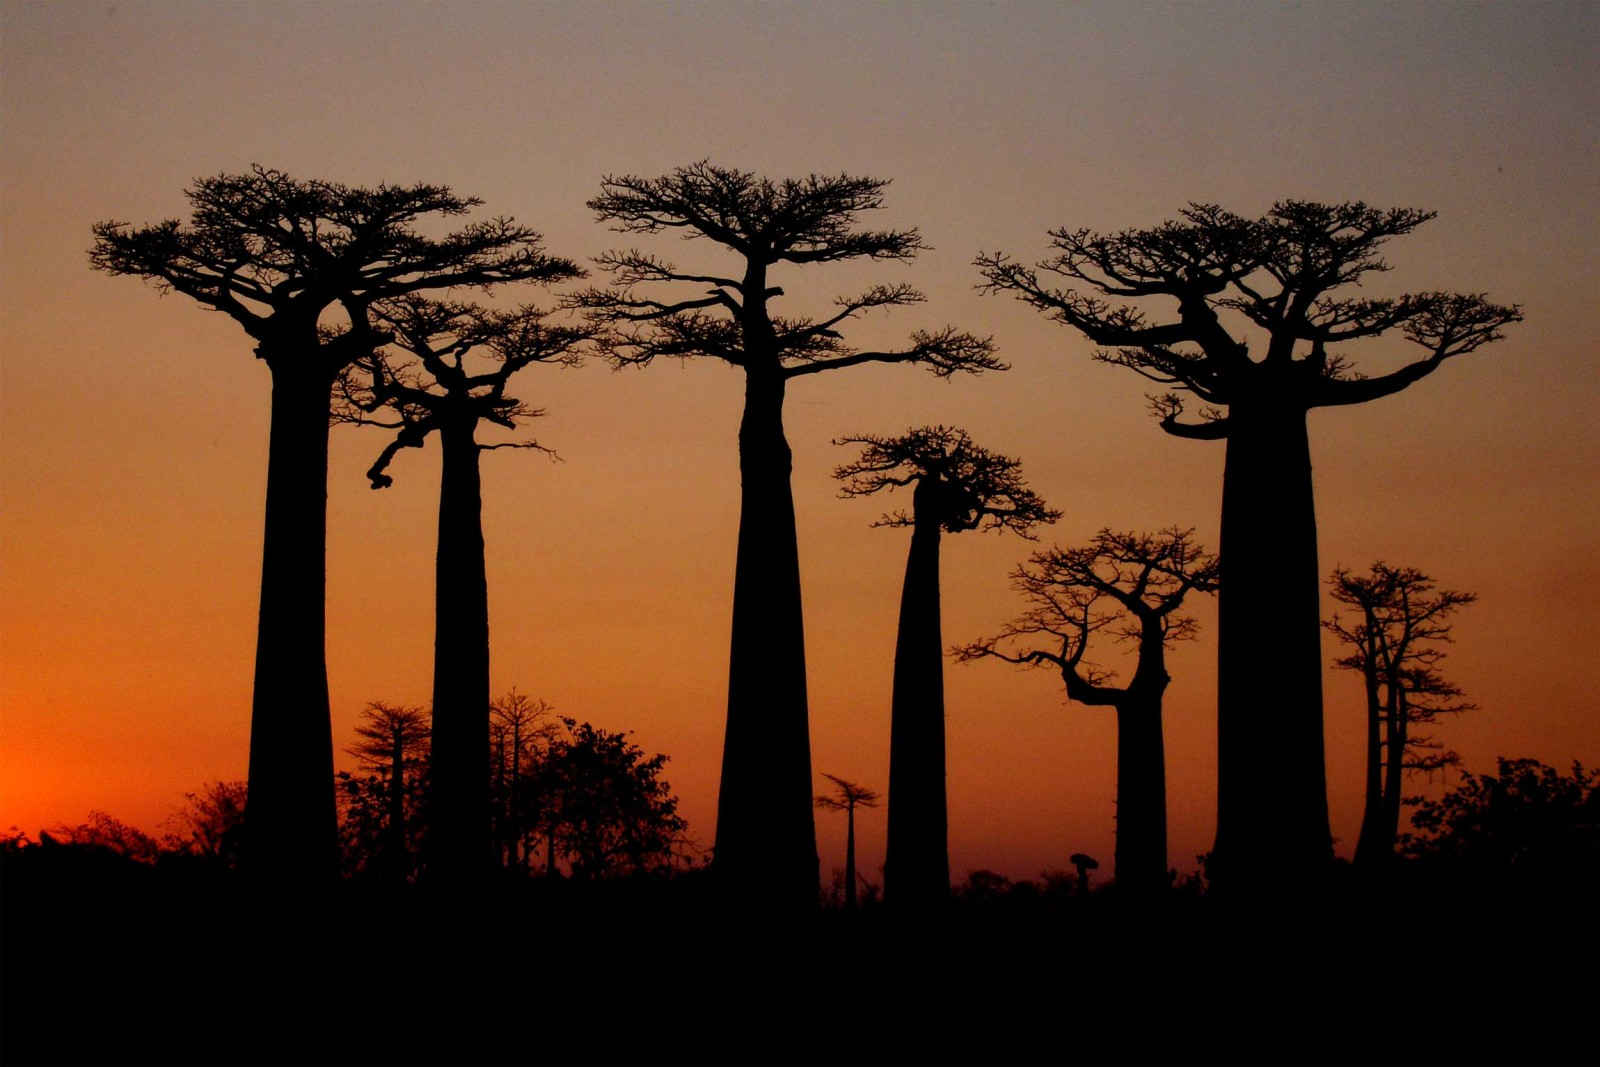 Madagascar-Tailormade-Tours-Active-and-Adventerous_Avenue-of-Boababs-at-sunset-jpg